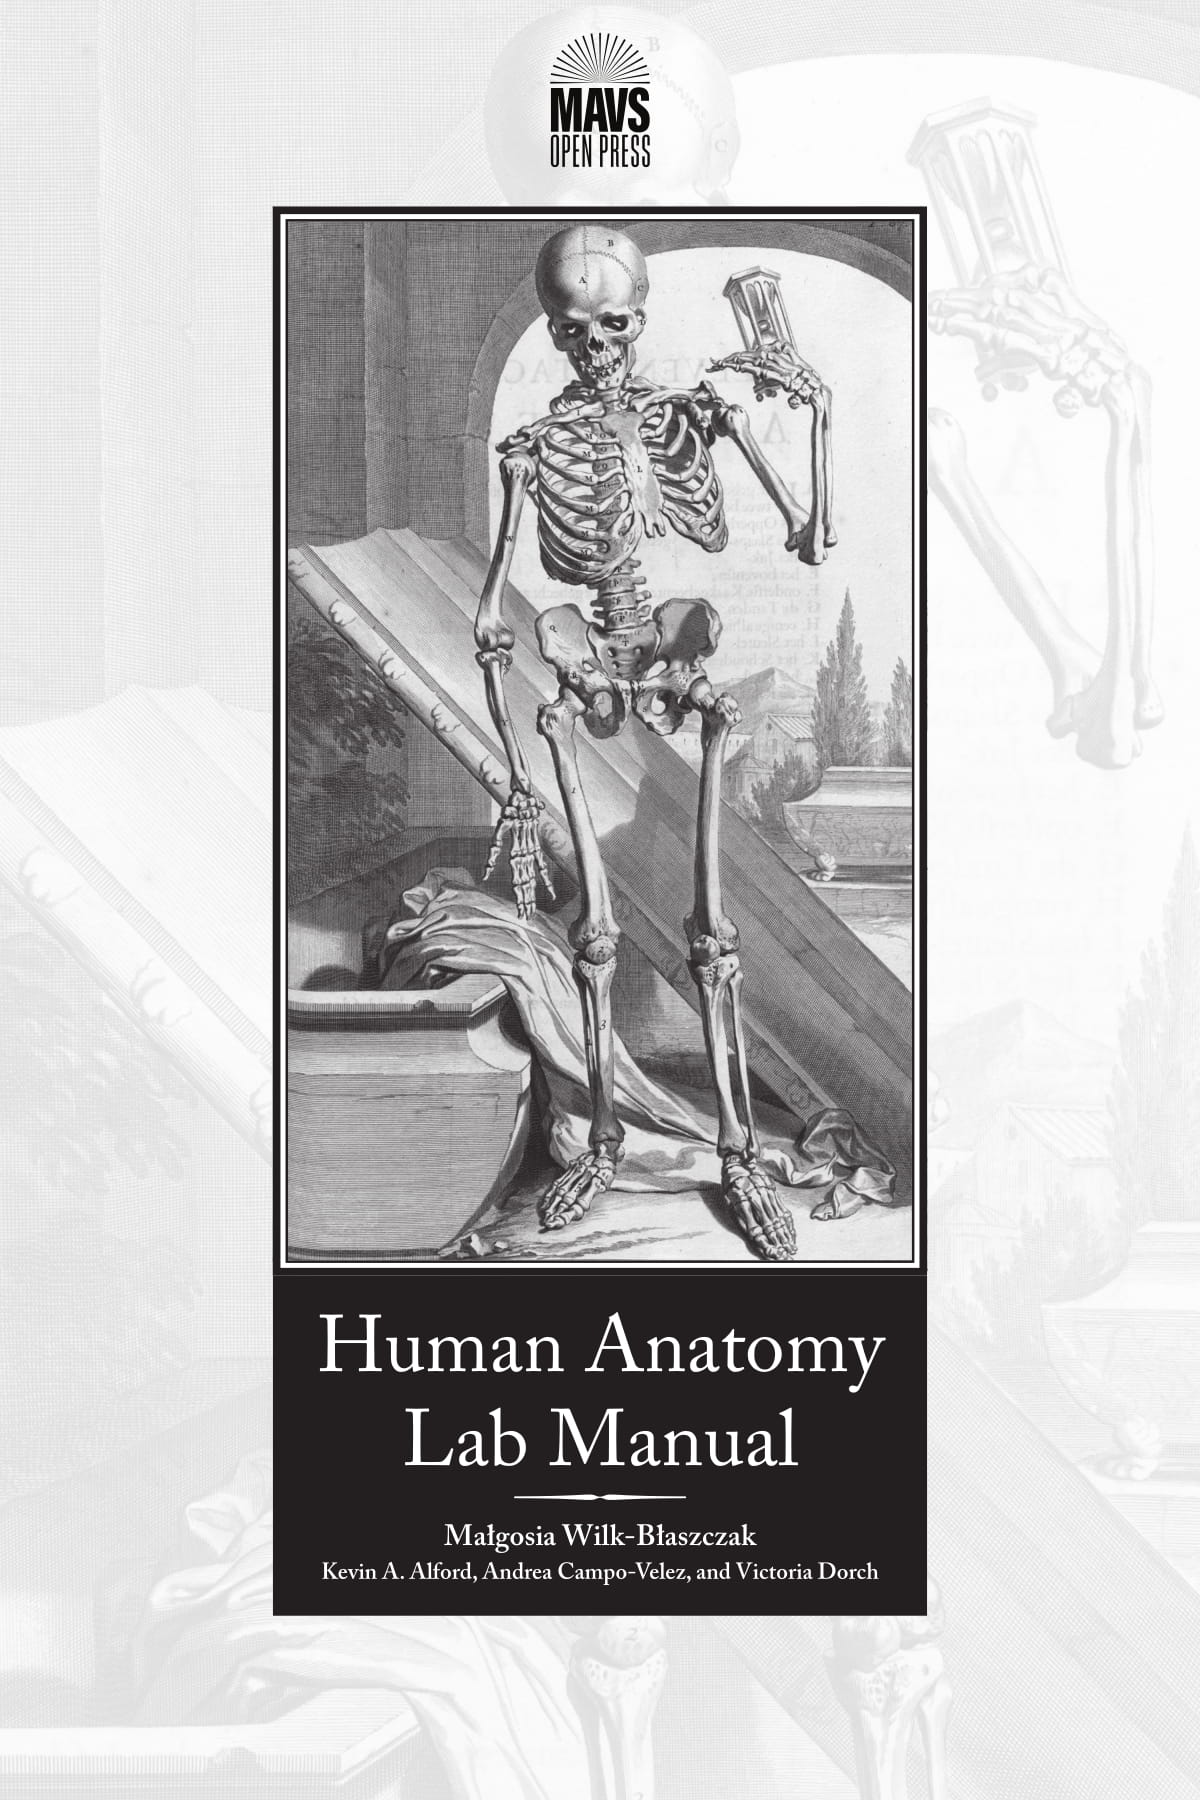 Human Anatomy Lab Manual